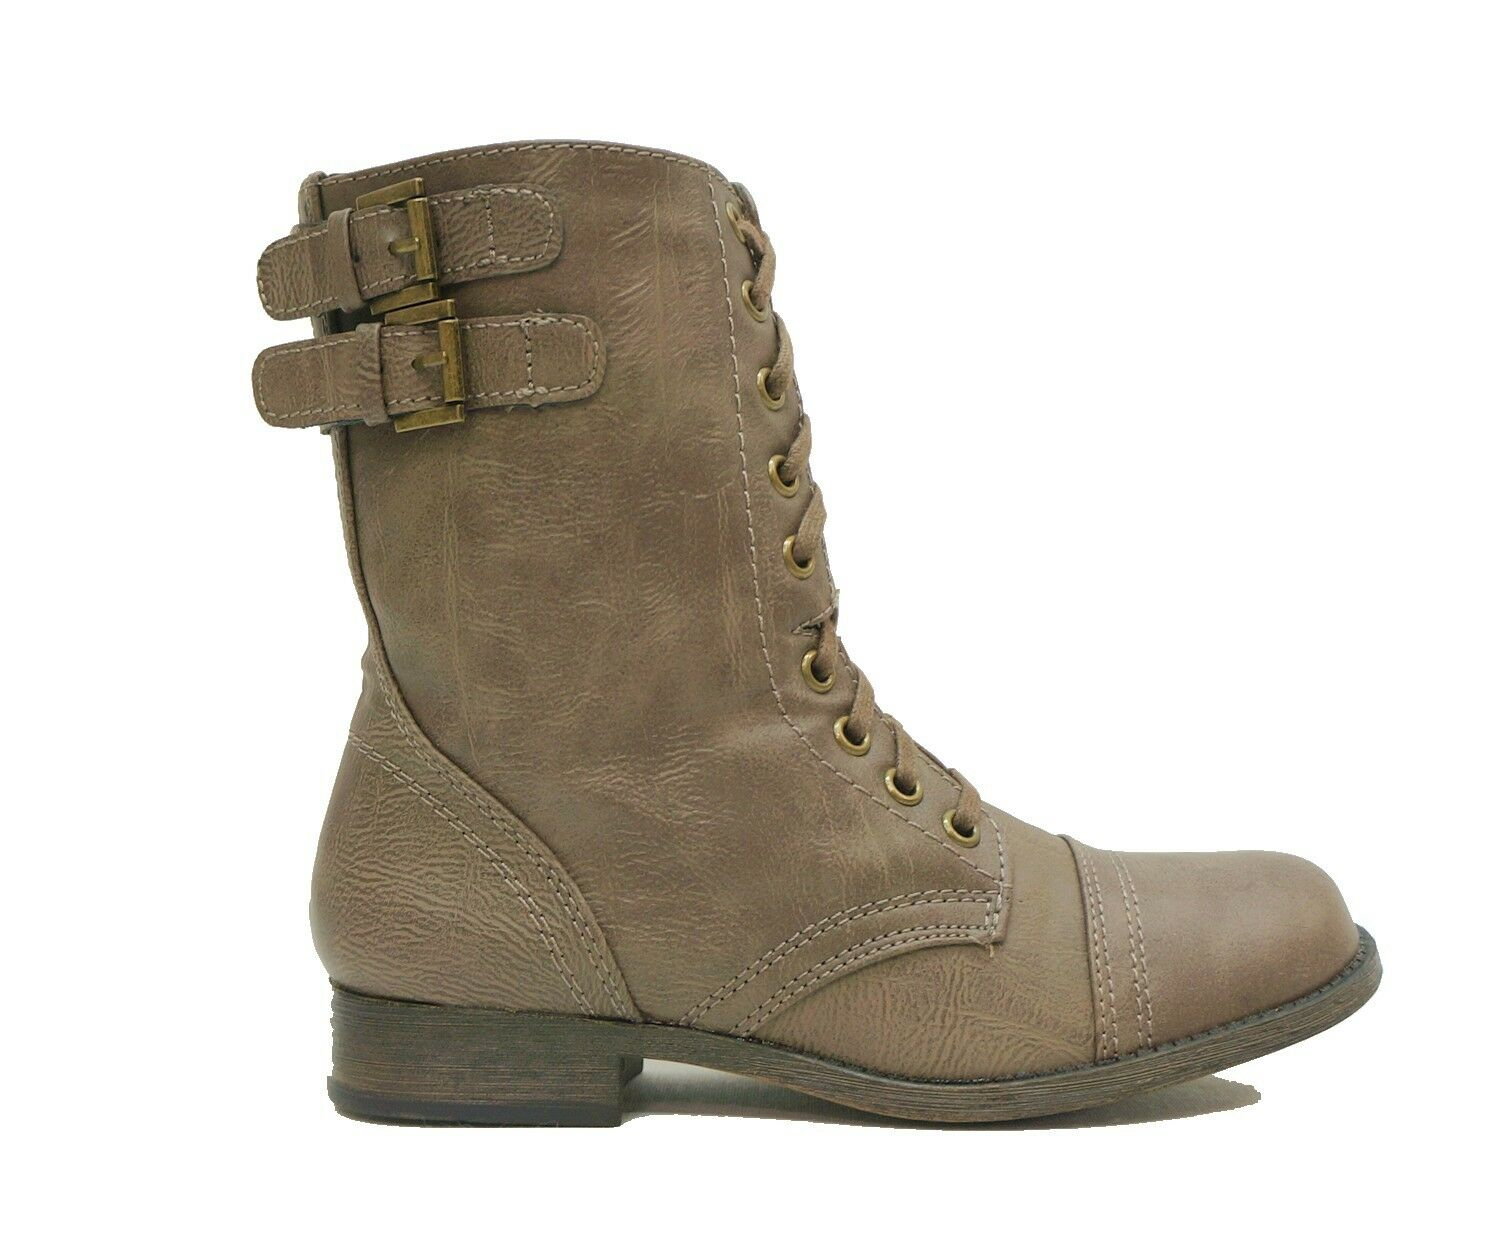 Rampage Taupe Lace Up Ankle Boots Booties JAYCER Women's Shoes US 6,6.5